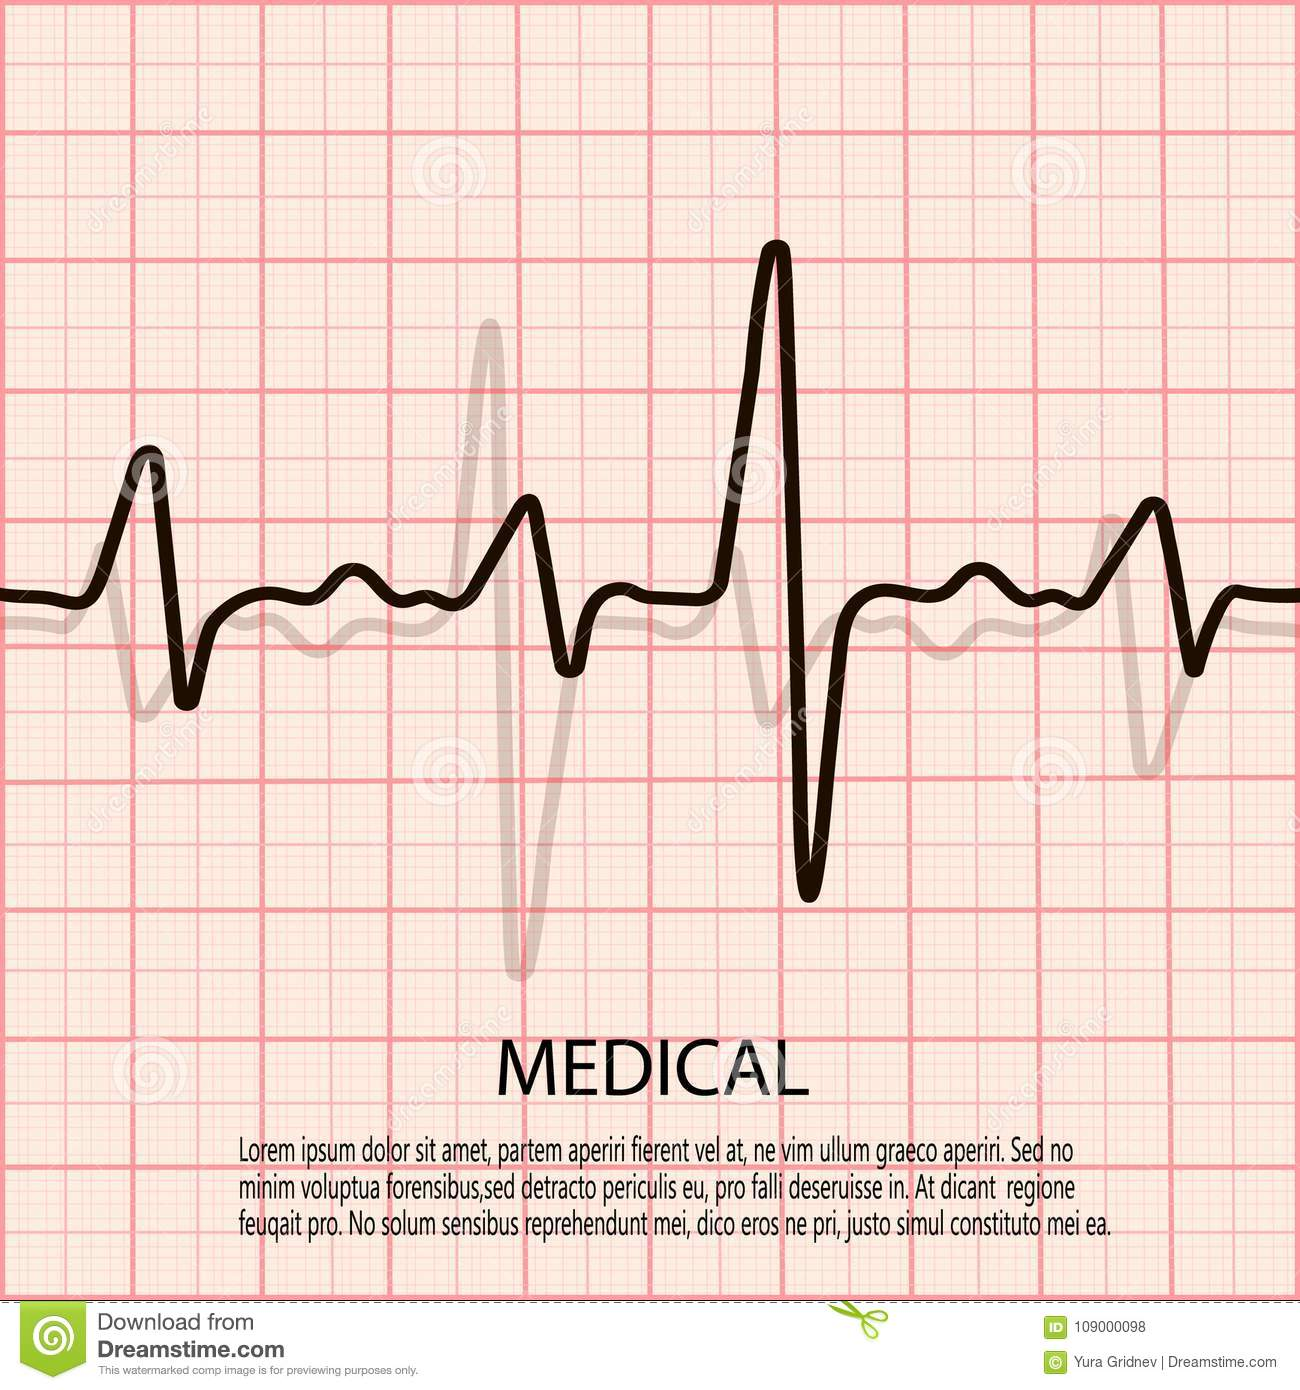 Cardiology Concept With Pulse Rate Diagram  Medical Background With Heart Cardiogram  Stock